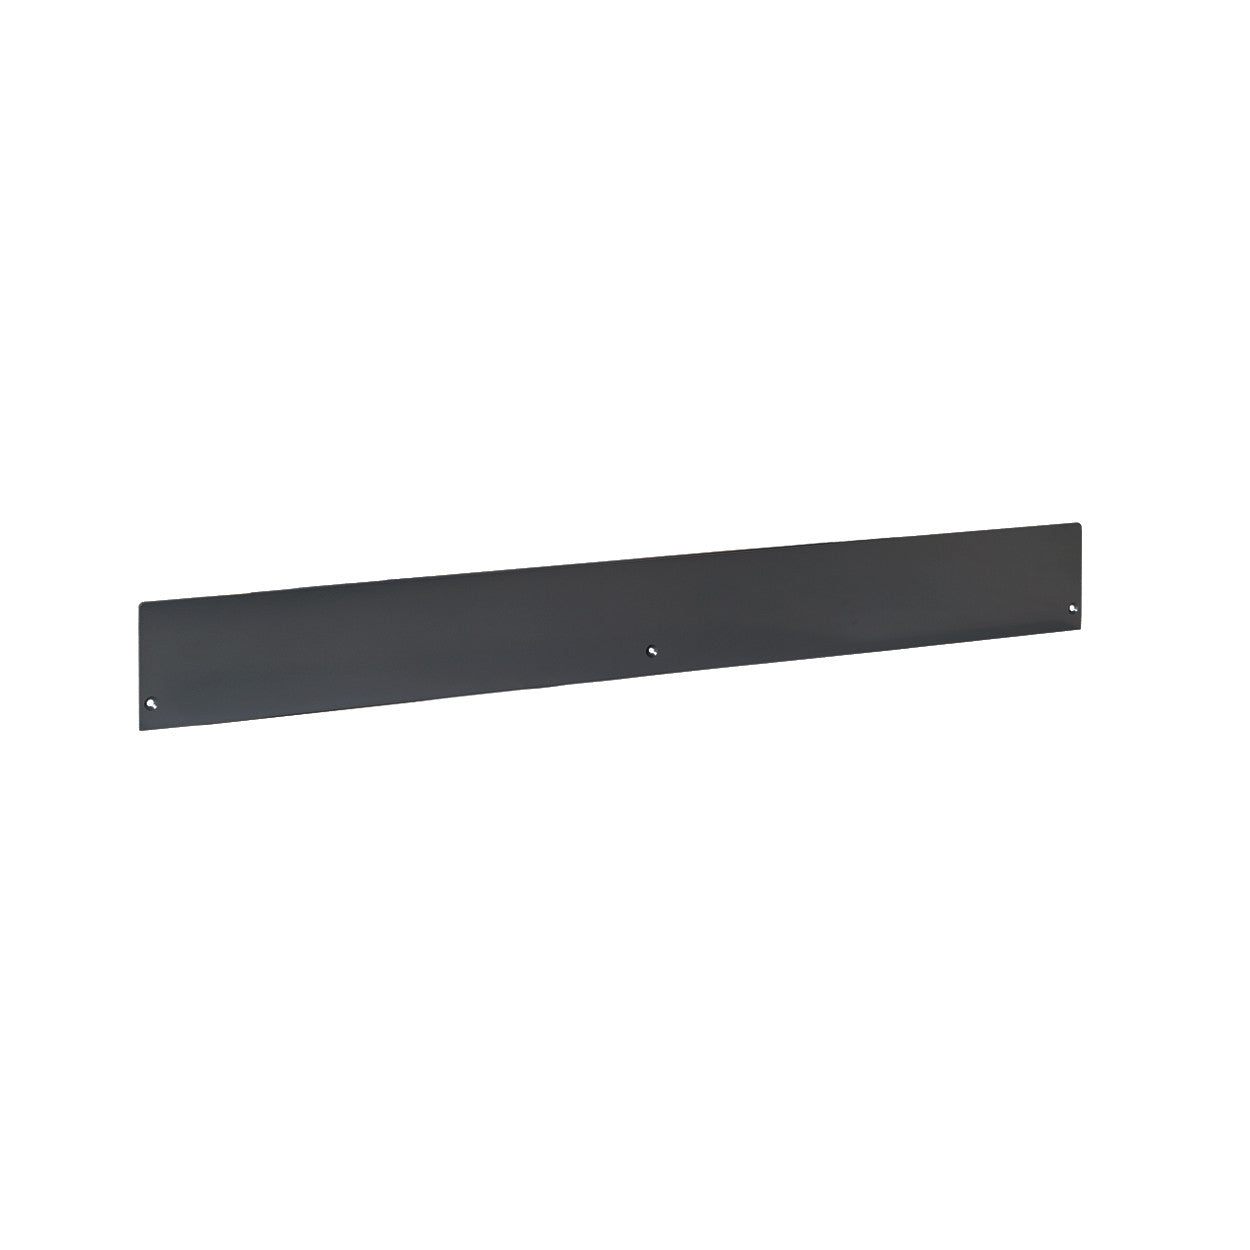 Maxe Shelf Lip Will Fit Front Or Back Of Shelf 893.5 L X 102 H X 2.5Mm Thick